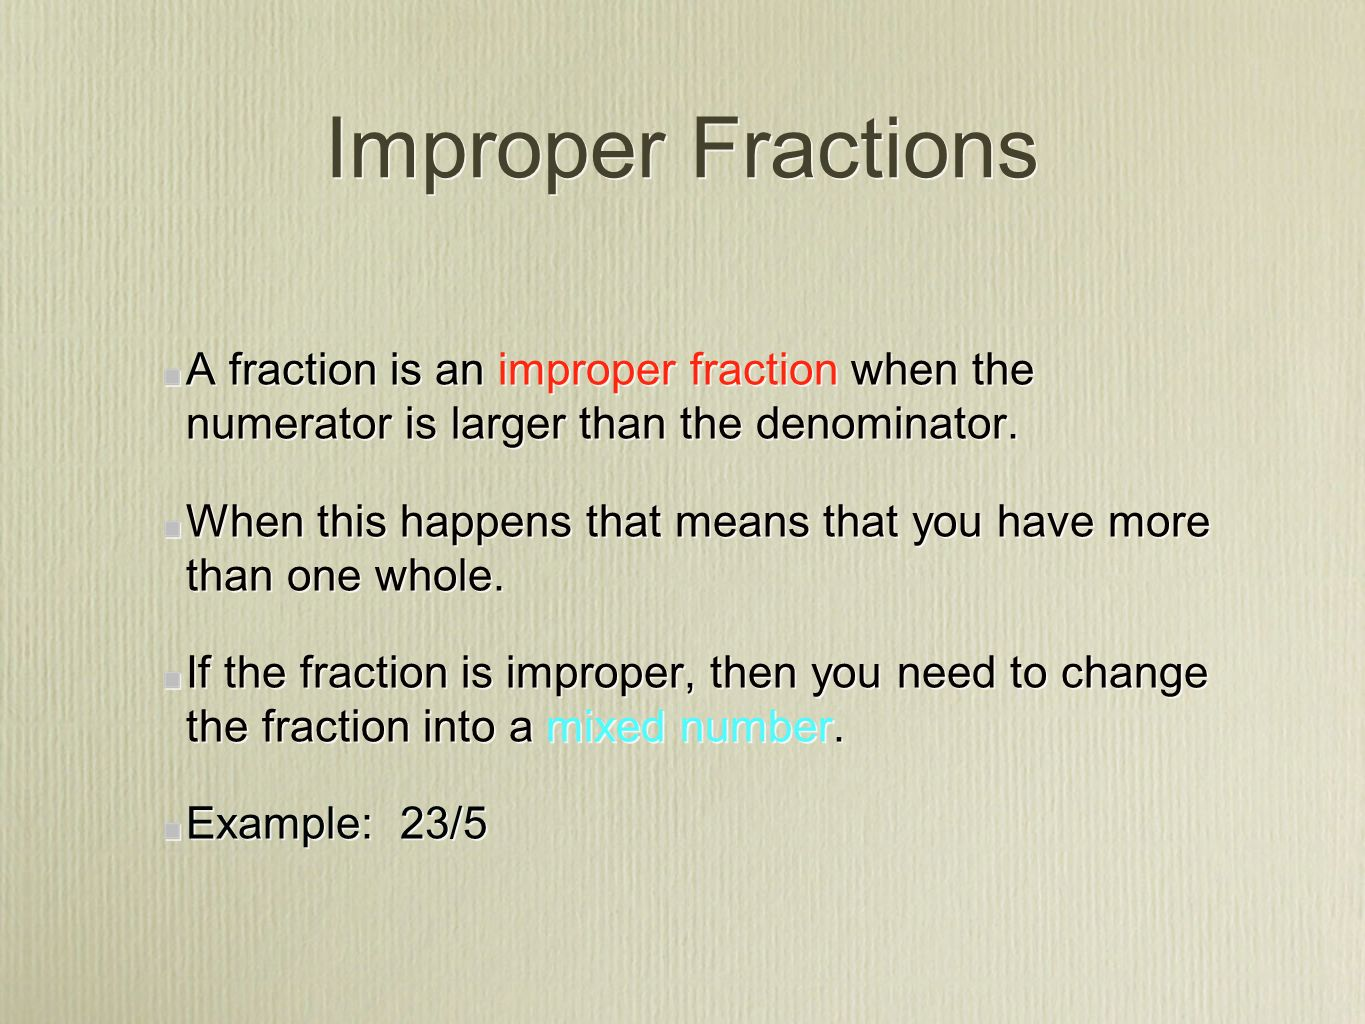 Improper Fractions A Fraction Is An Improper Fraction When The Numerator Is  Larger Than The Denominator